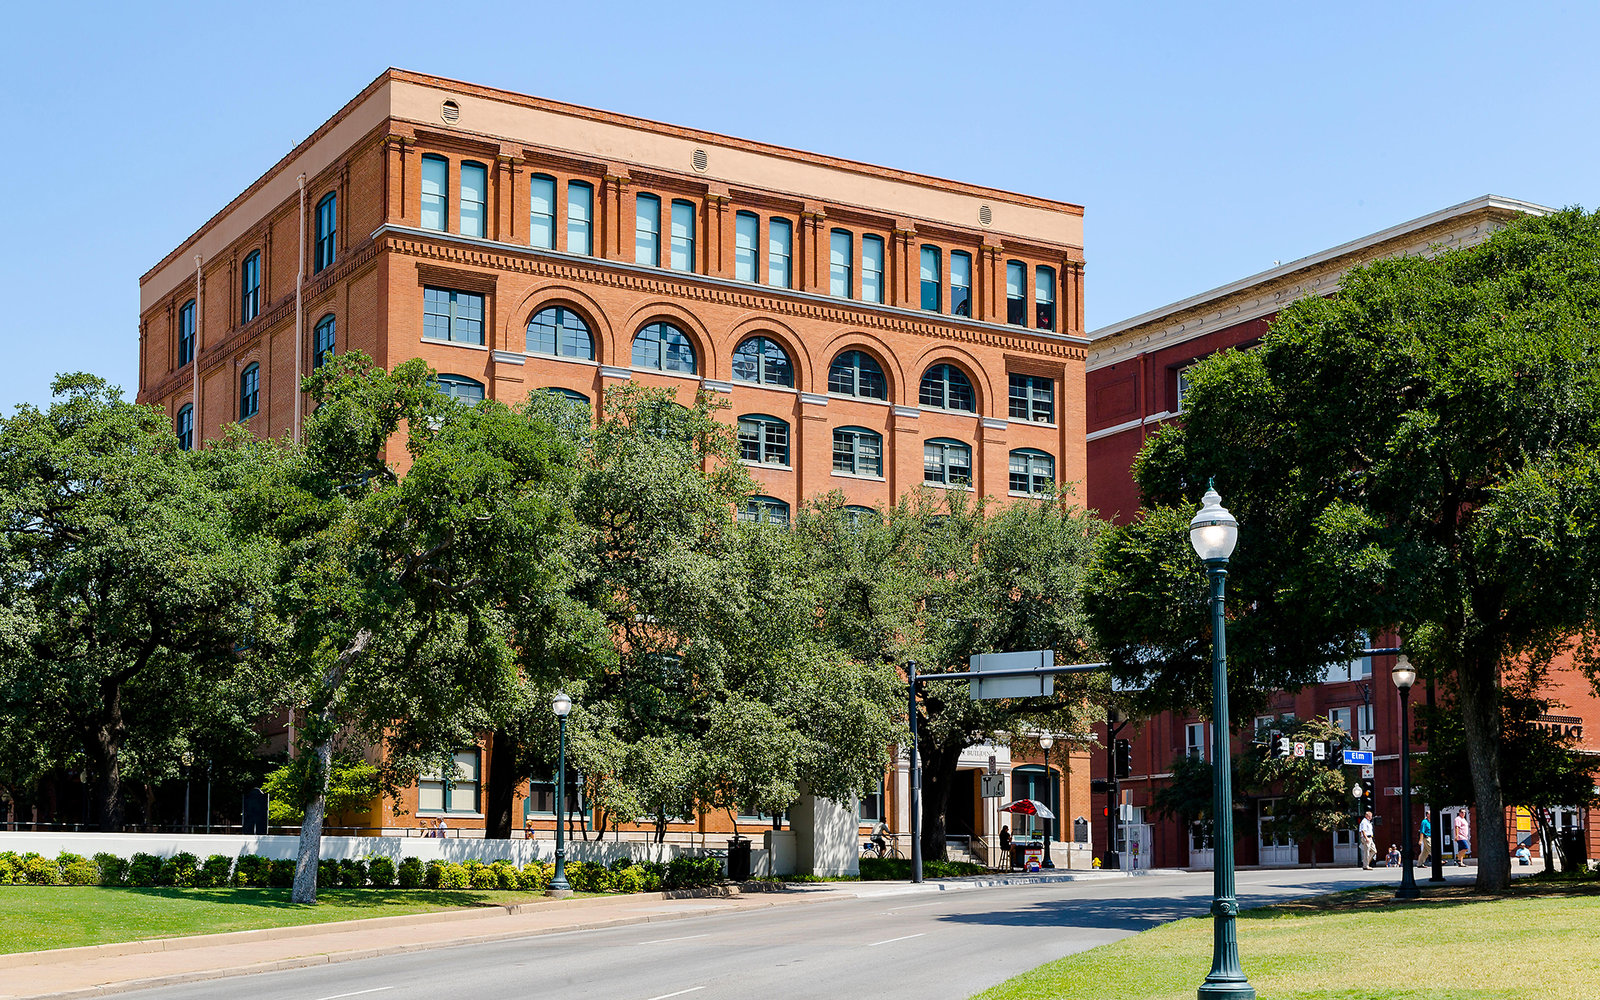 Sixth Floor Museum at Dealey Plaza  Travel  Leisure